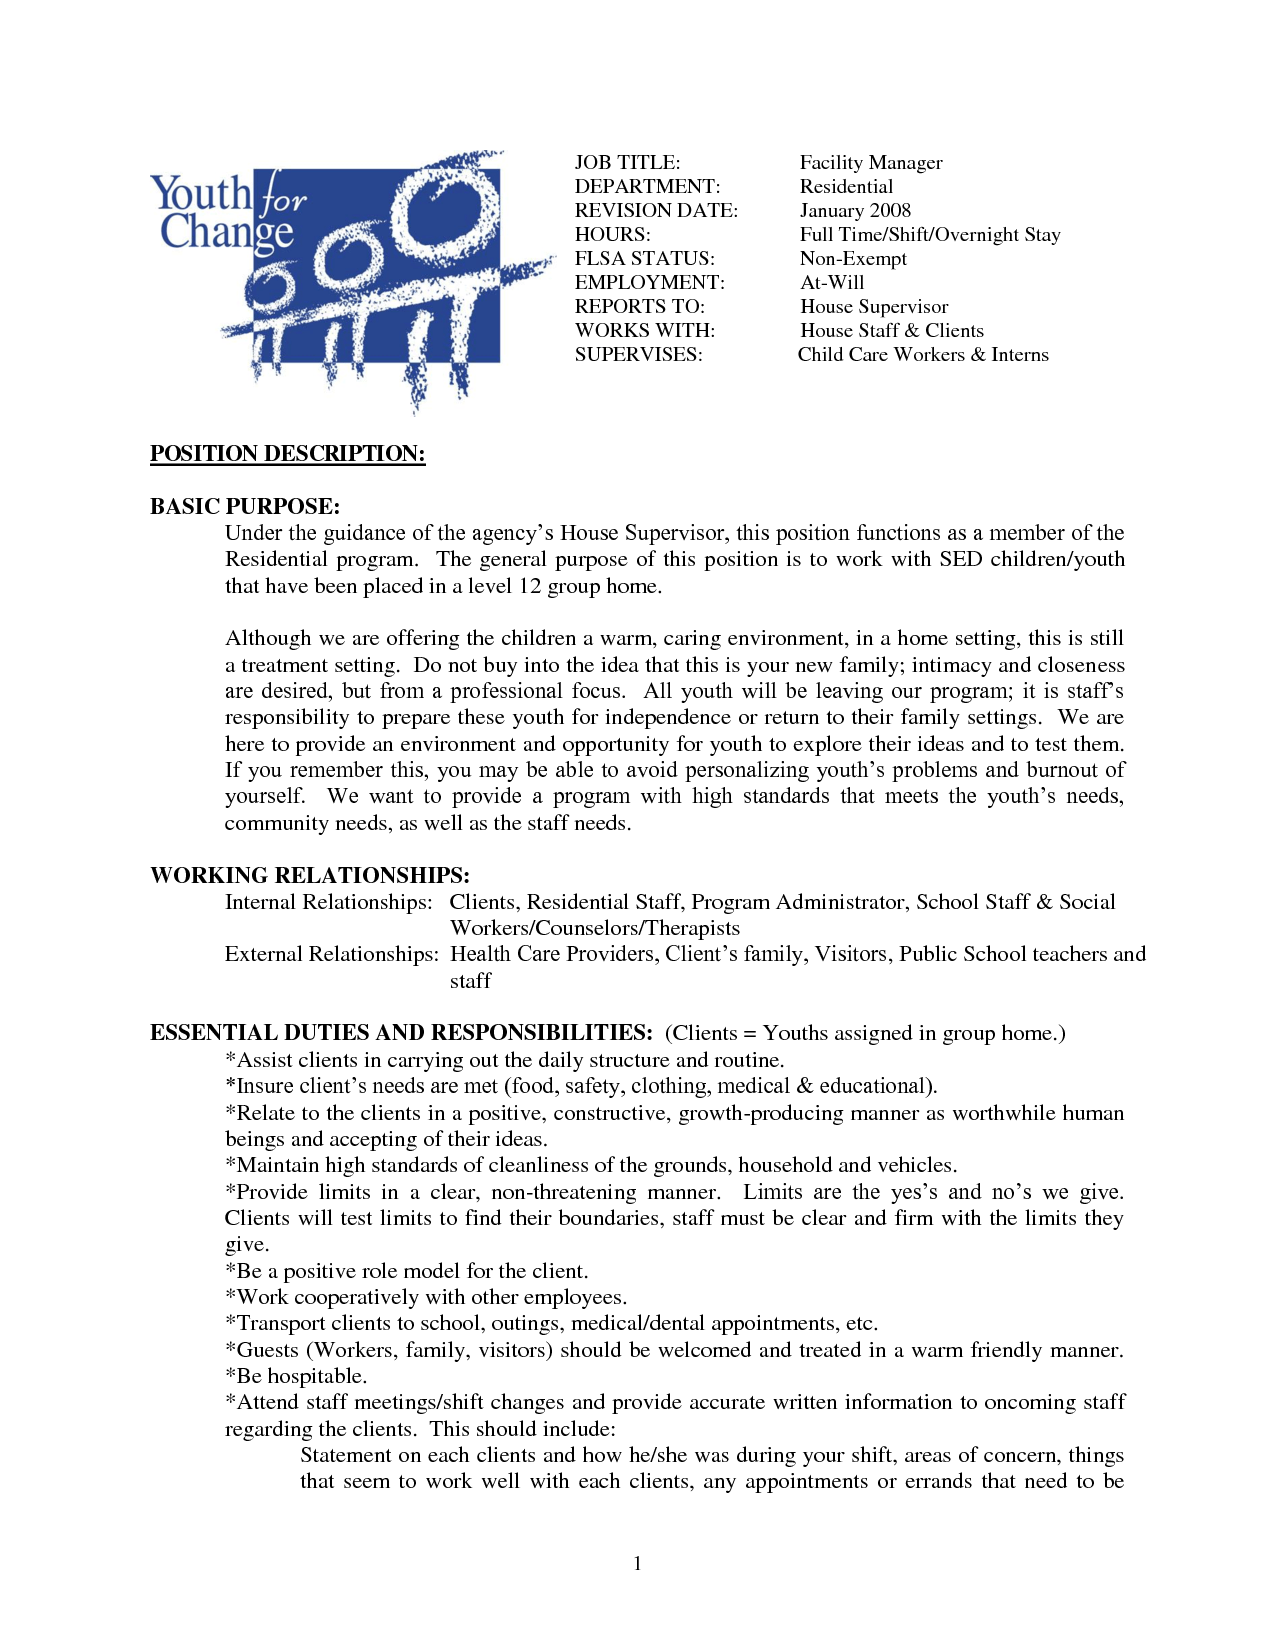 cleaning job resume samples